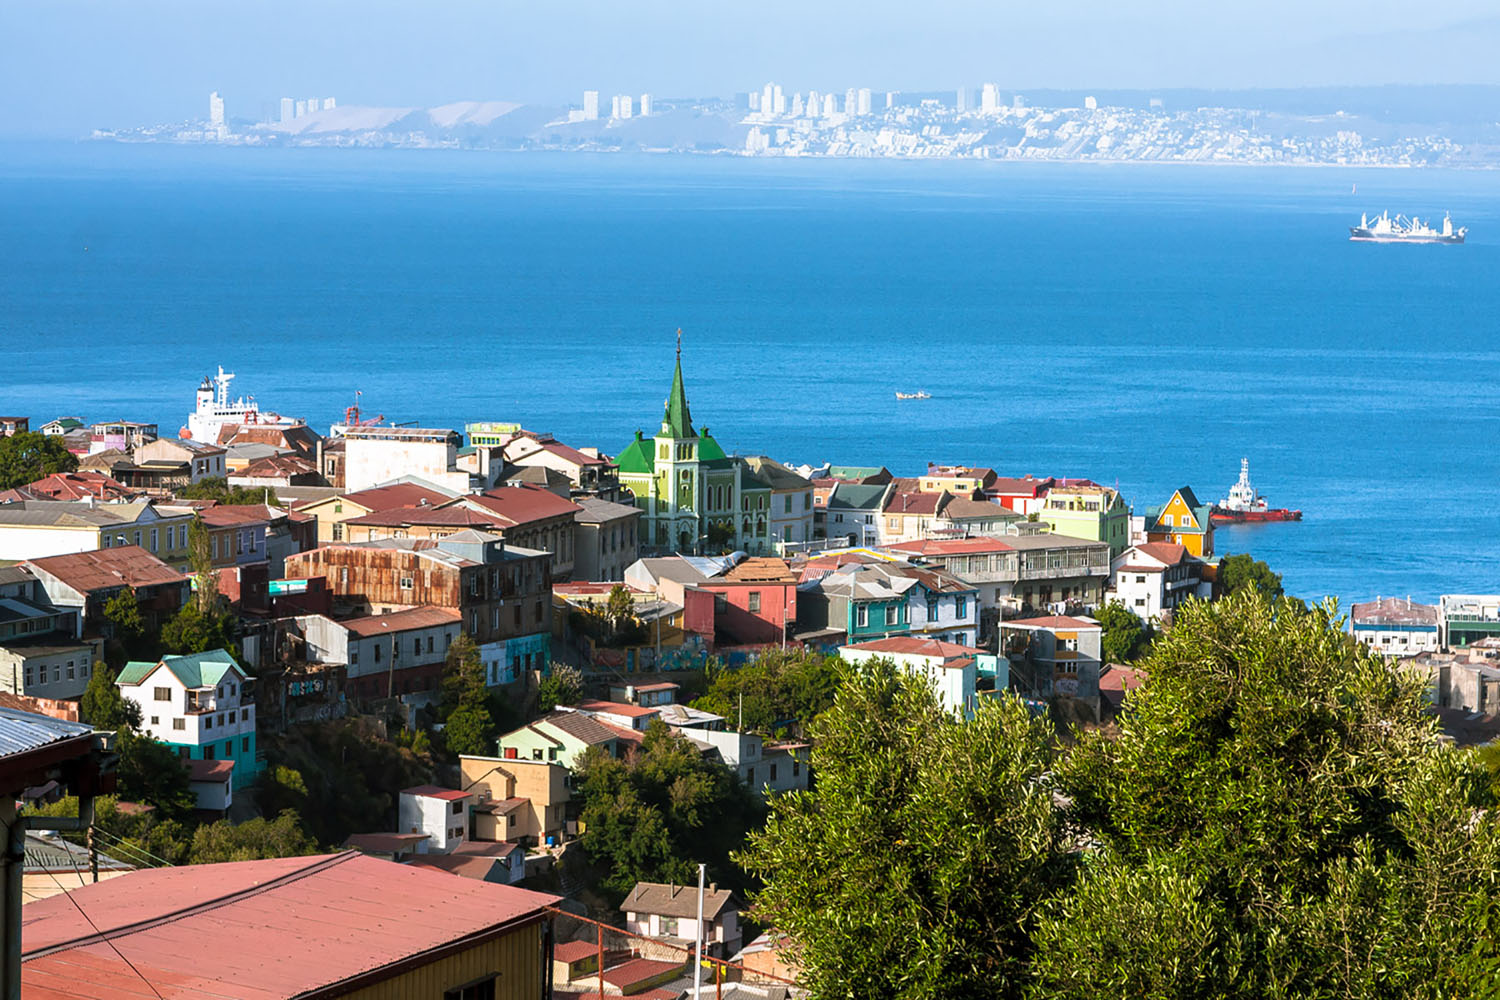 An aerial view of Valparaiso, Chile.